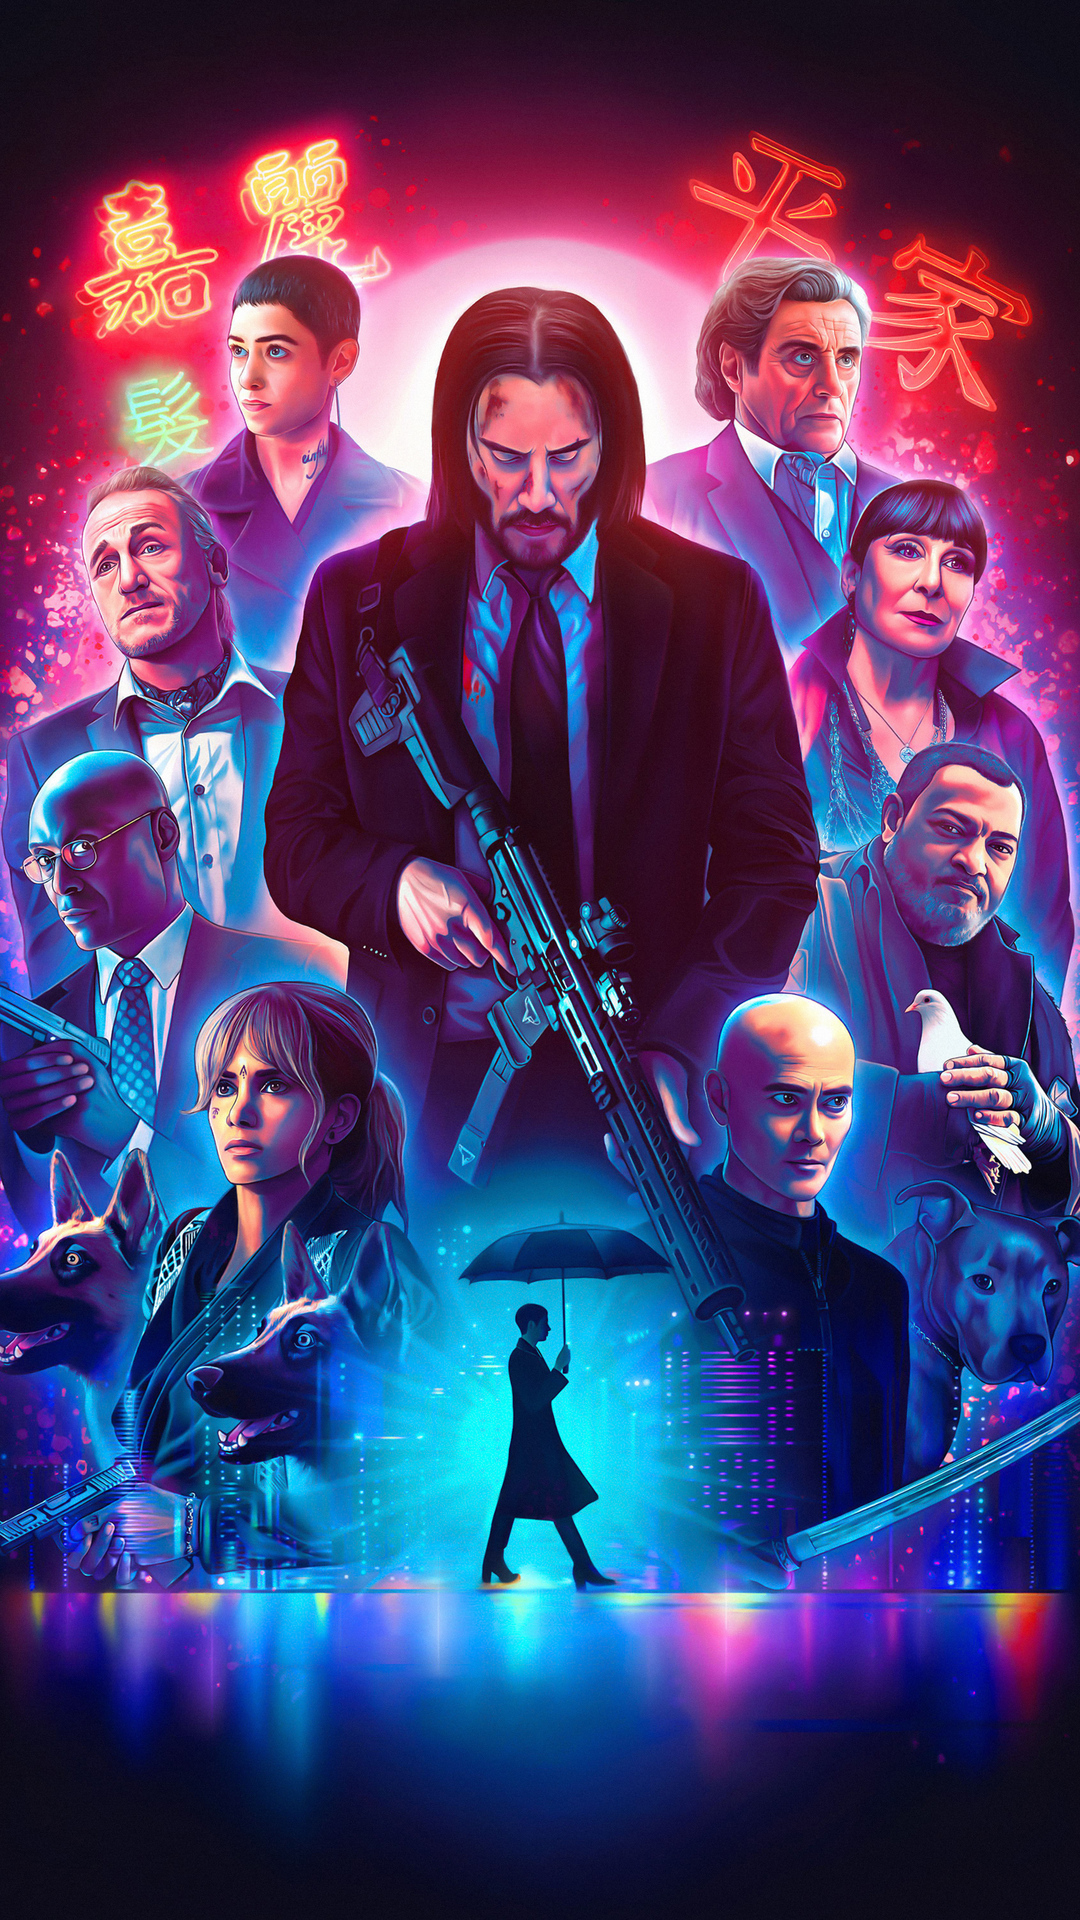 dog-in-john-wick-chapter-3-2019-parabellum-4k-ne.jpg